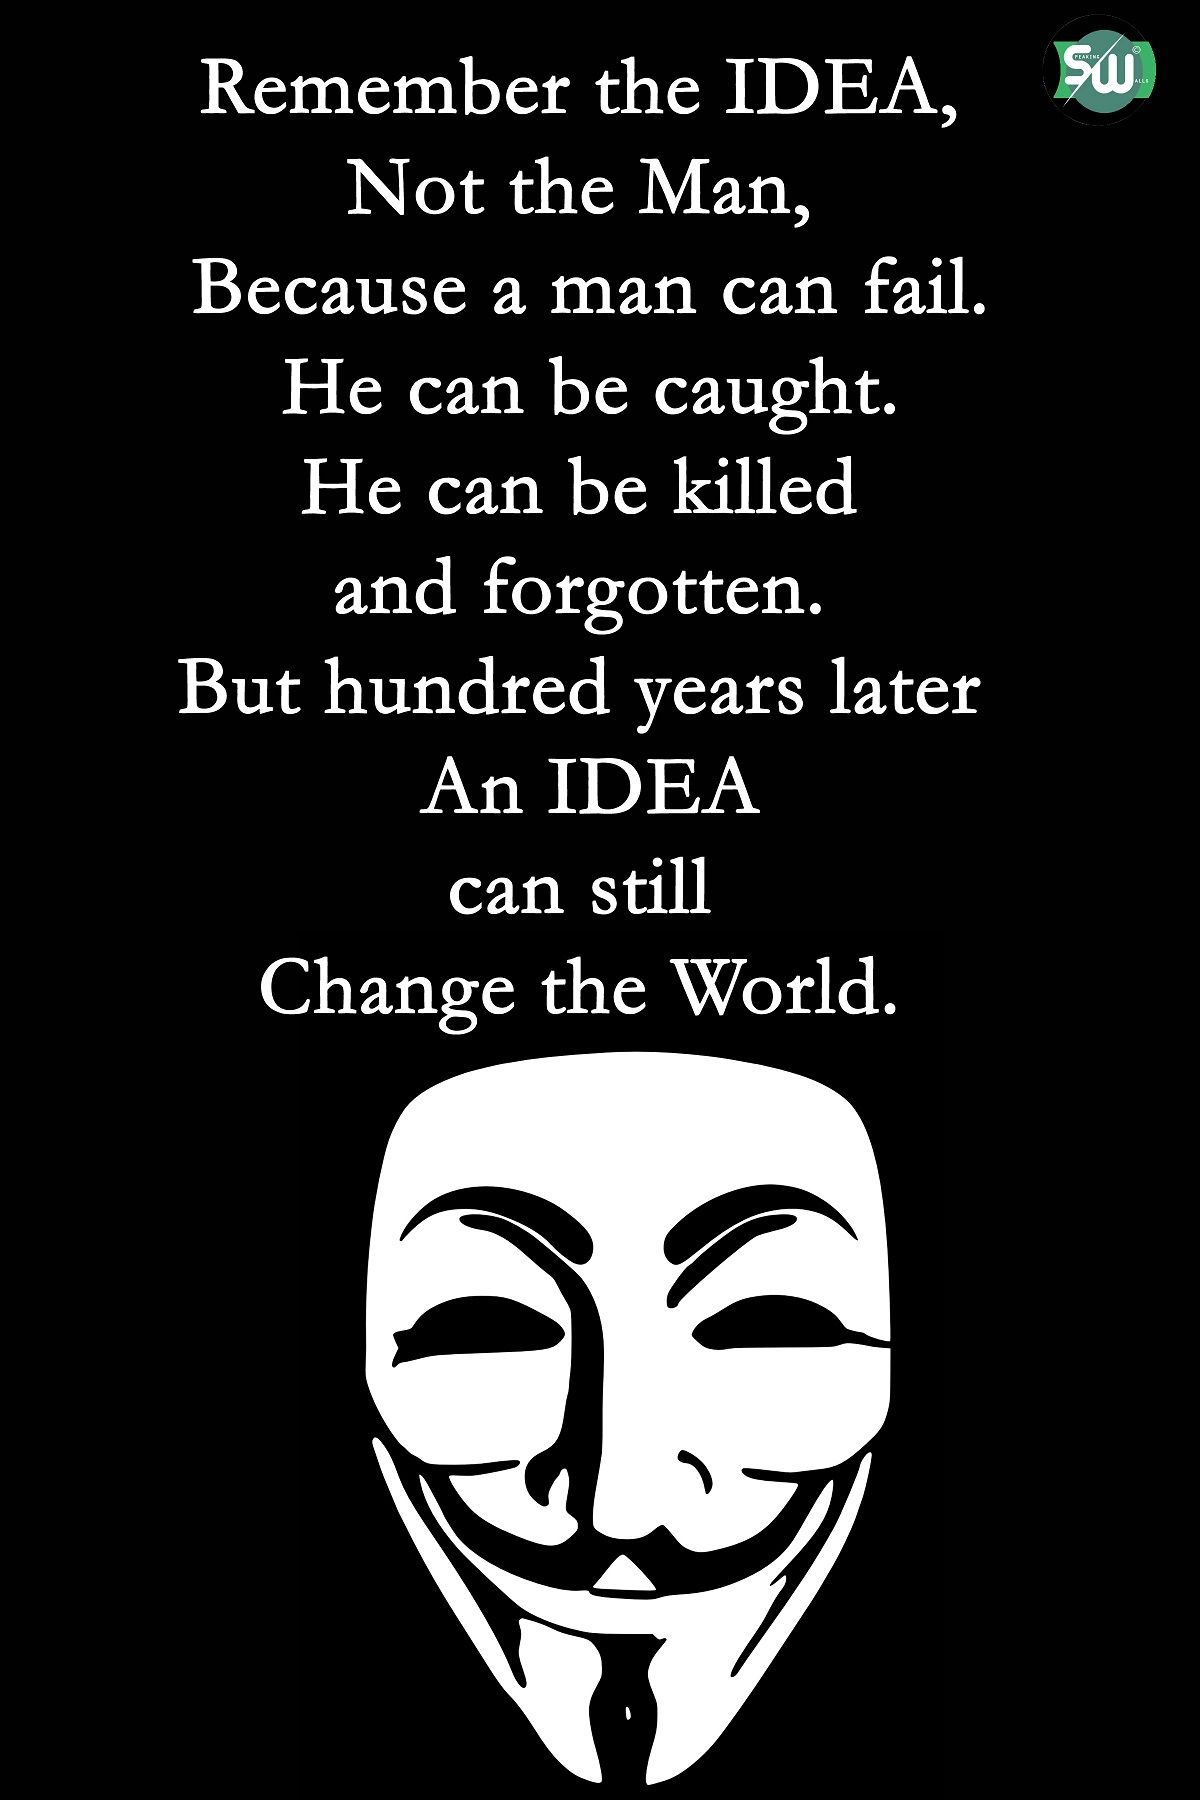 V For Vendetta Quotes Pin by Nemara Prakorimas on Wisdom Bits | Quotes, V For Vendetta  V For Vendetta Quotes